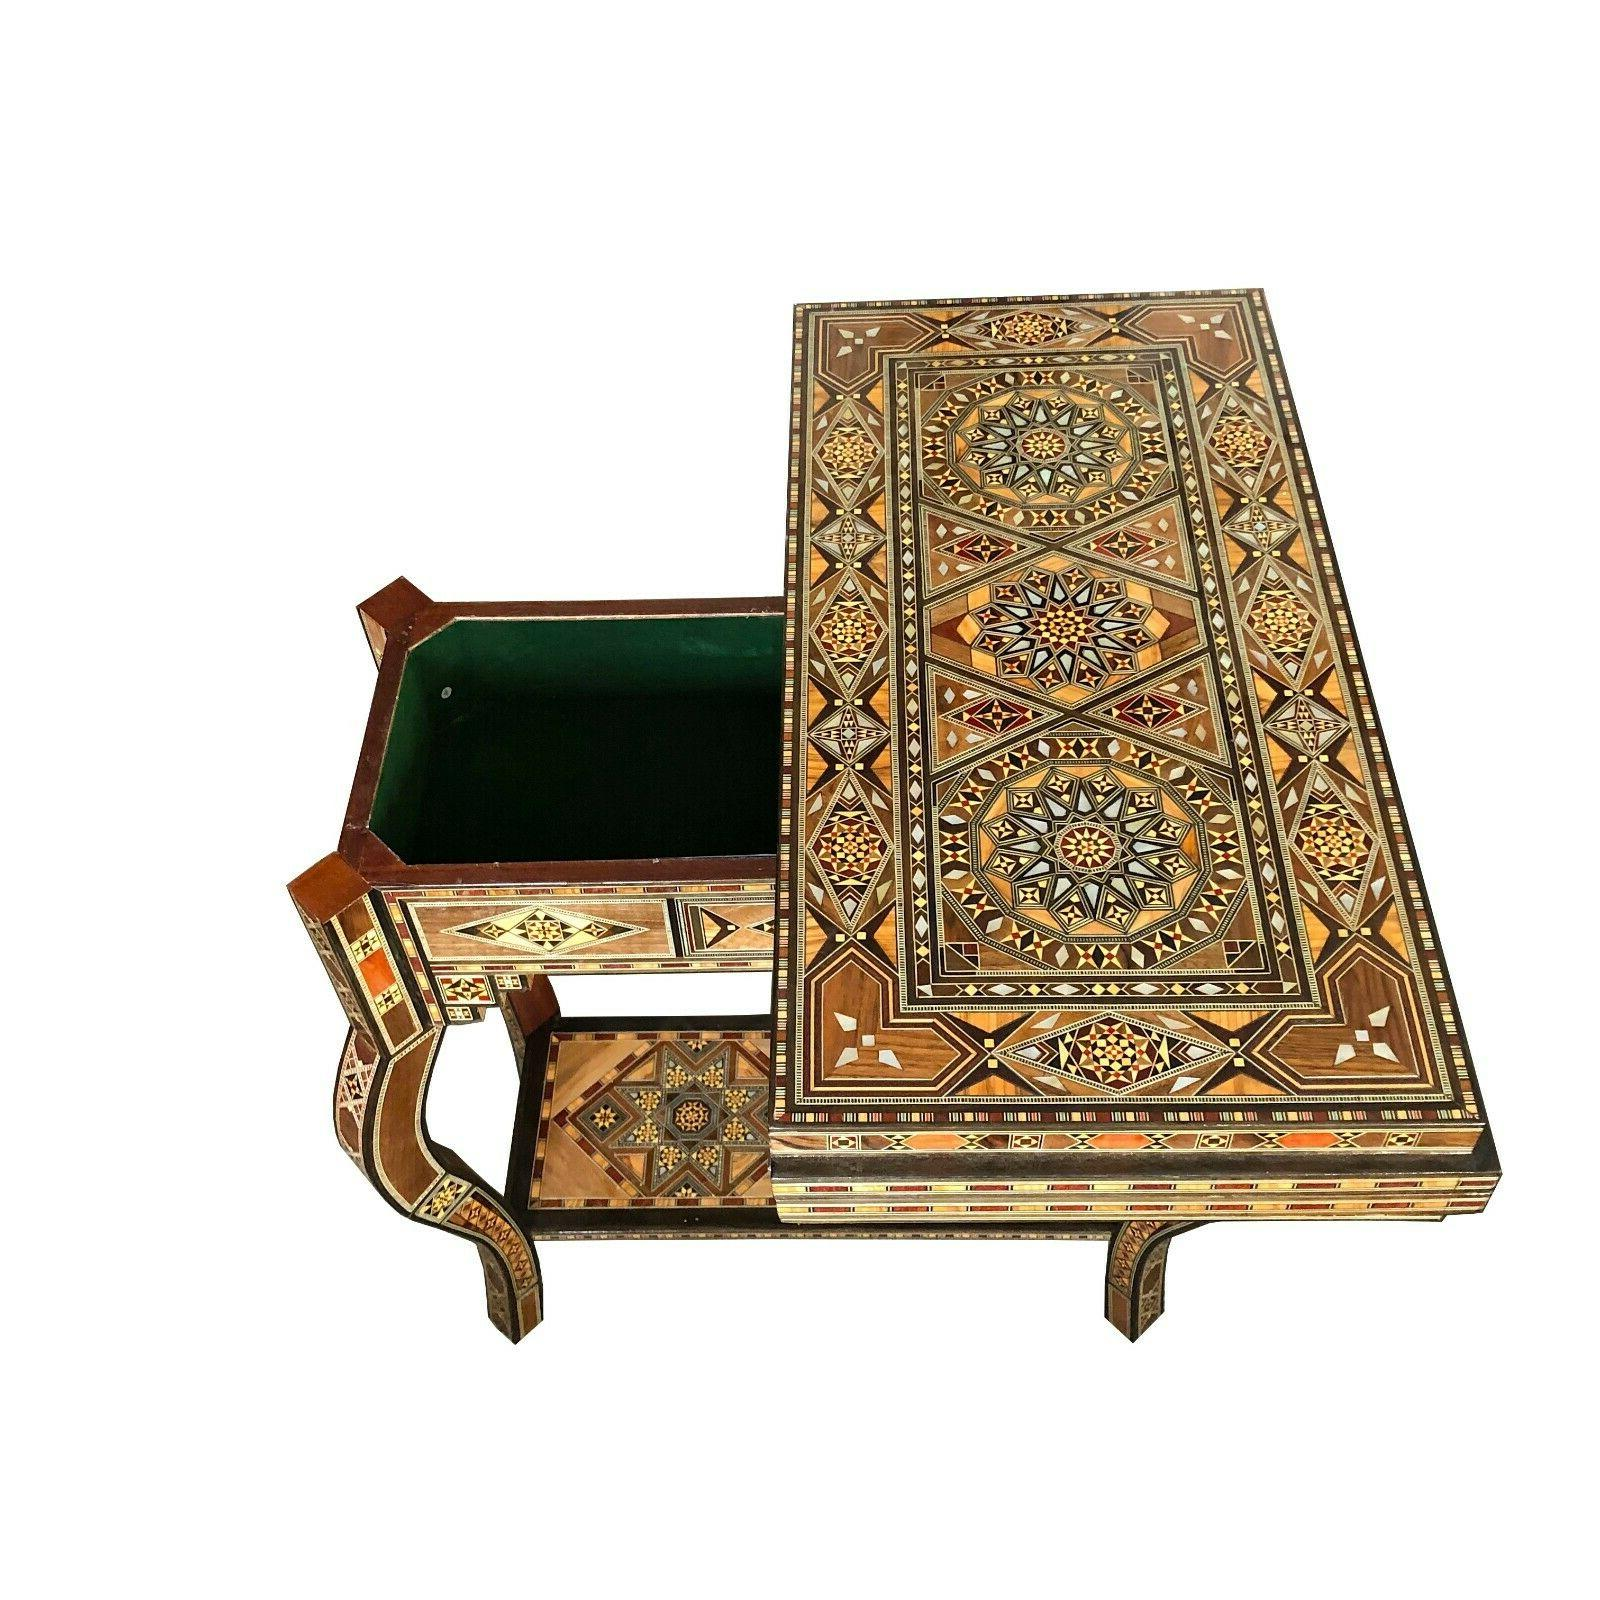 Syrian game table